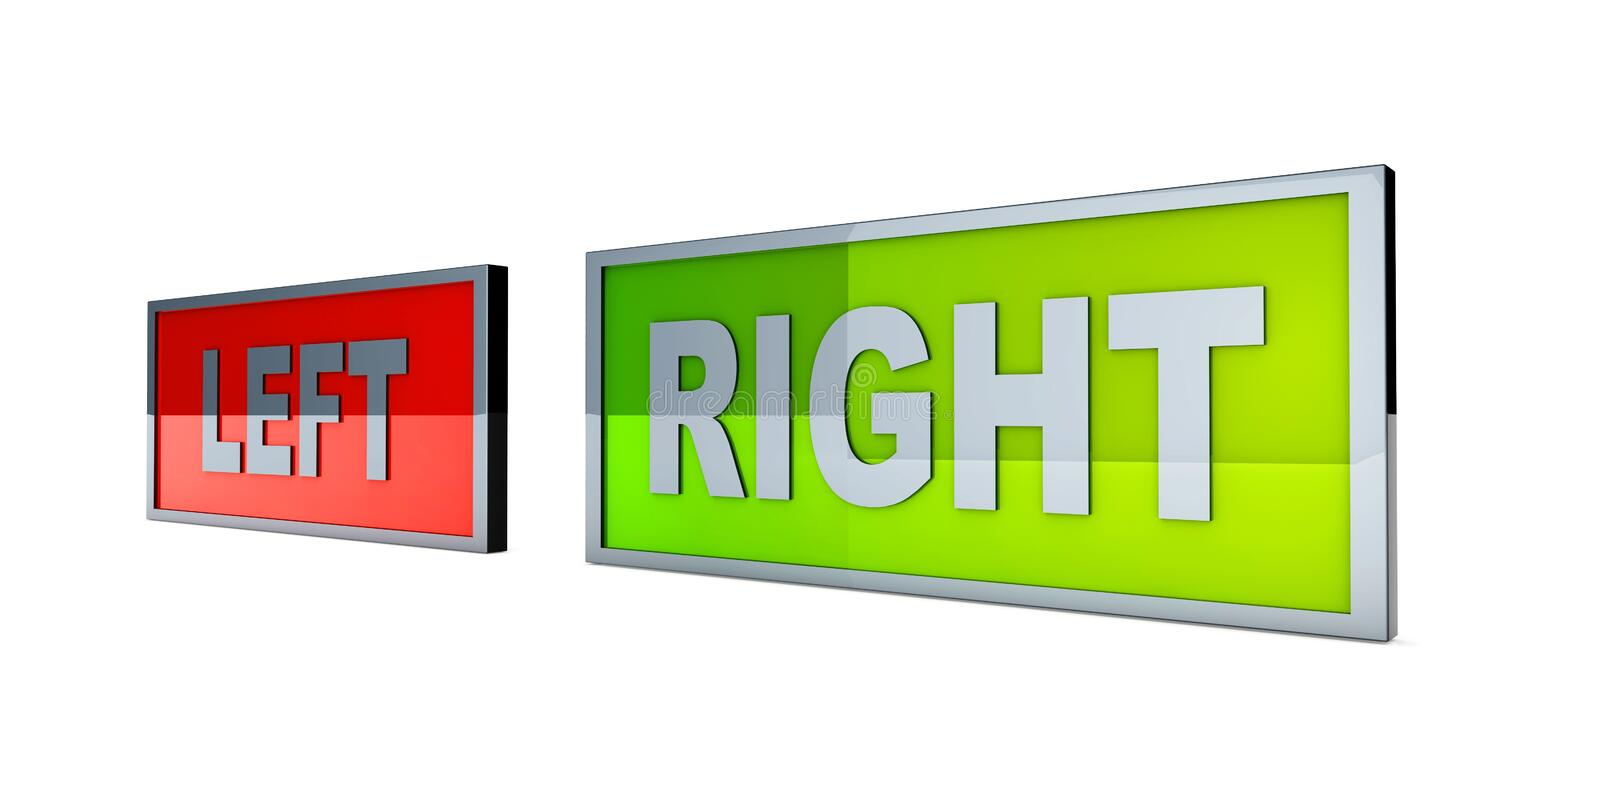 Left and right. Political directions. 3D rendered illustration royalty free illustration